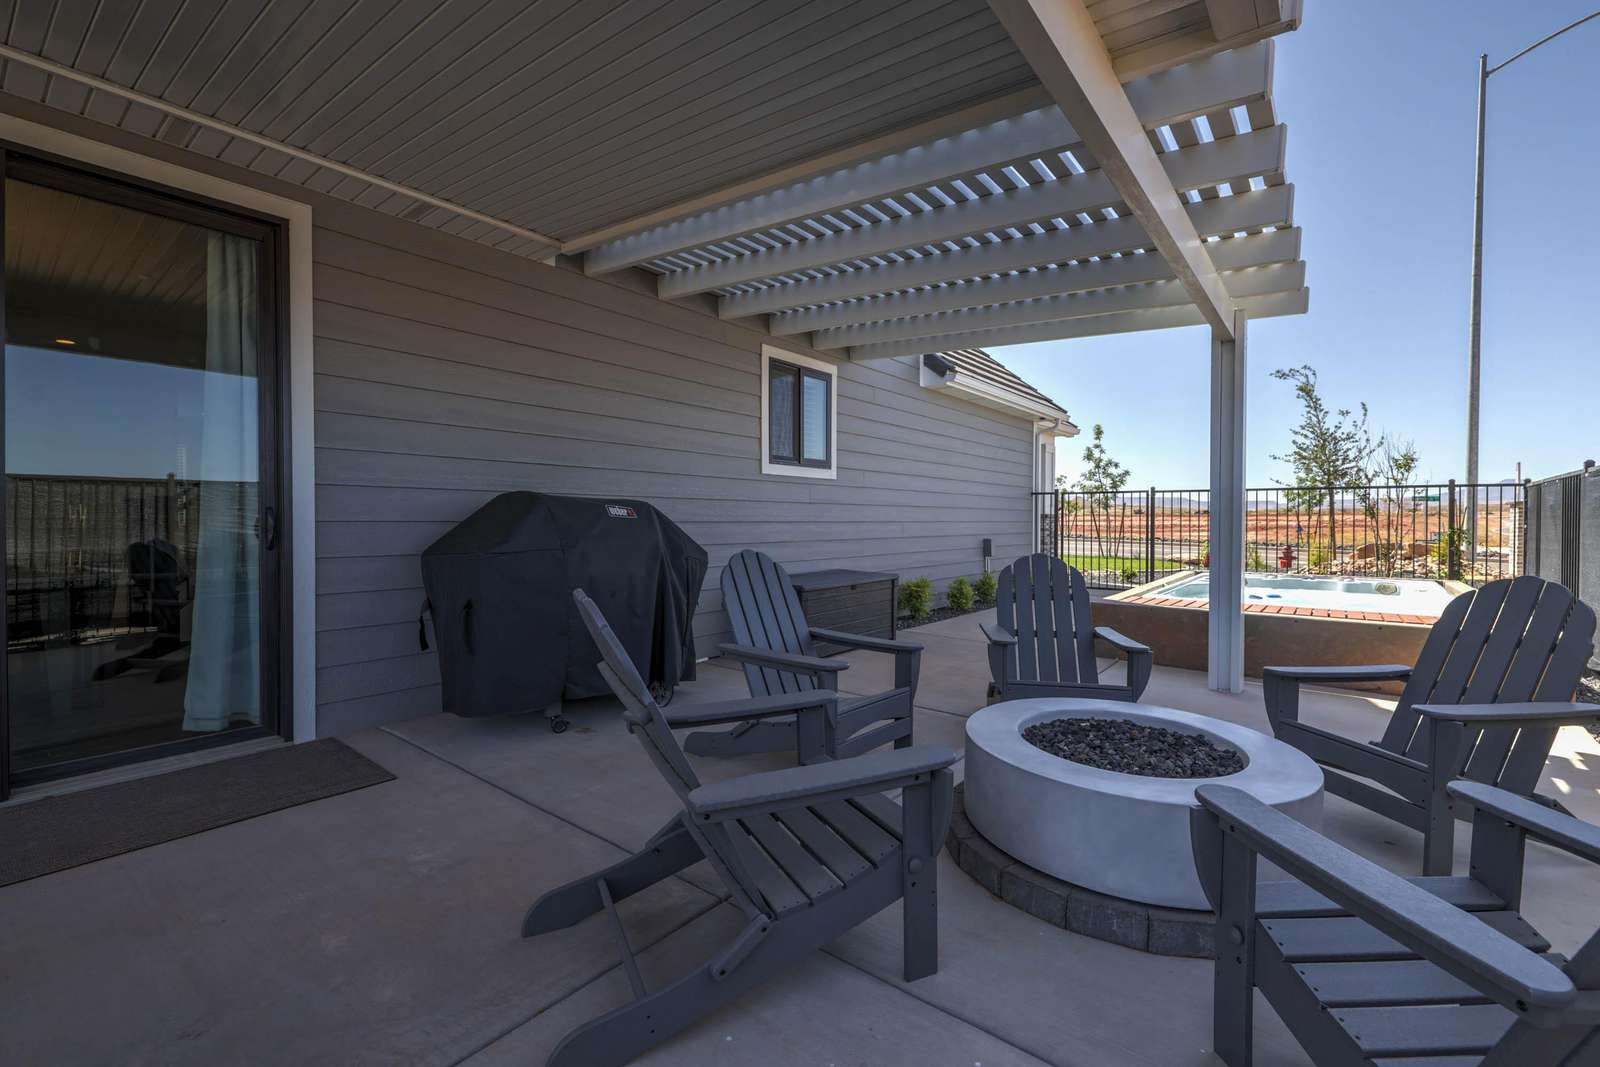 Covered patio with outdoor seating